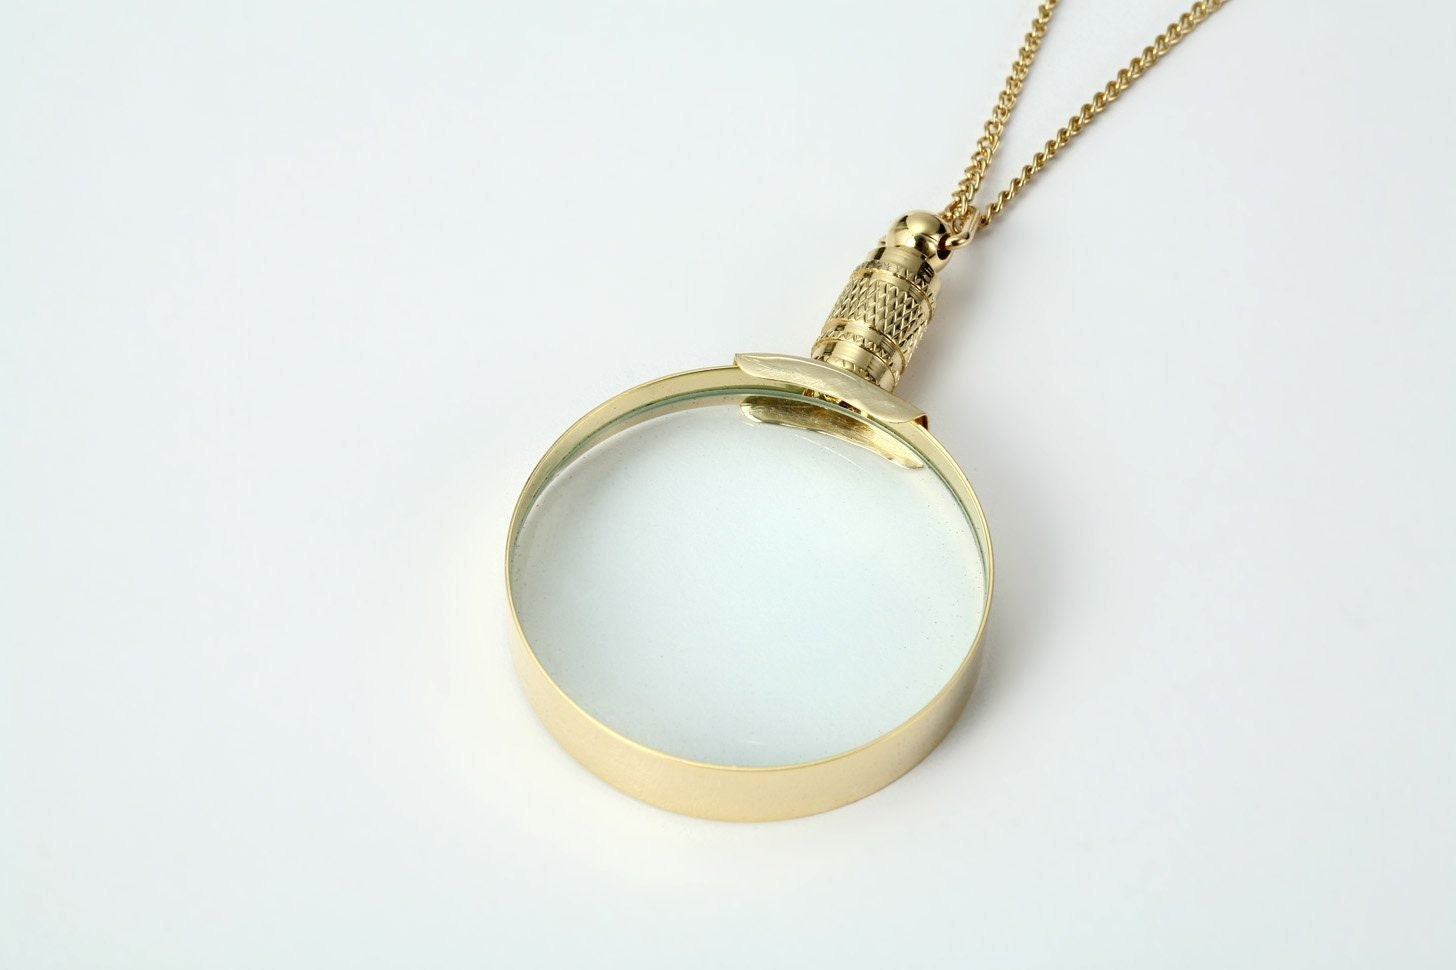 5x gold magnifying glass necklace pendant magnifier by